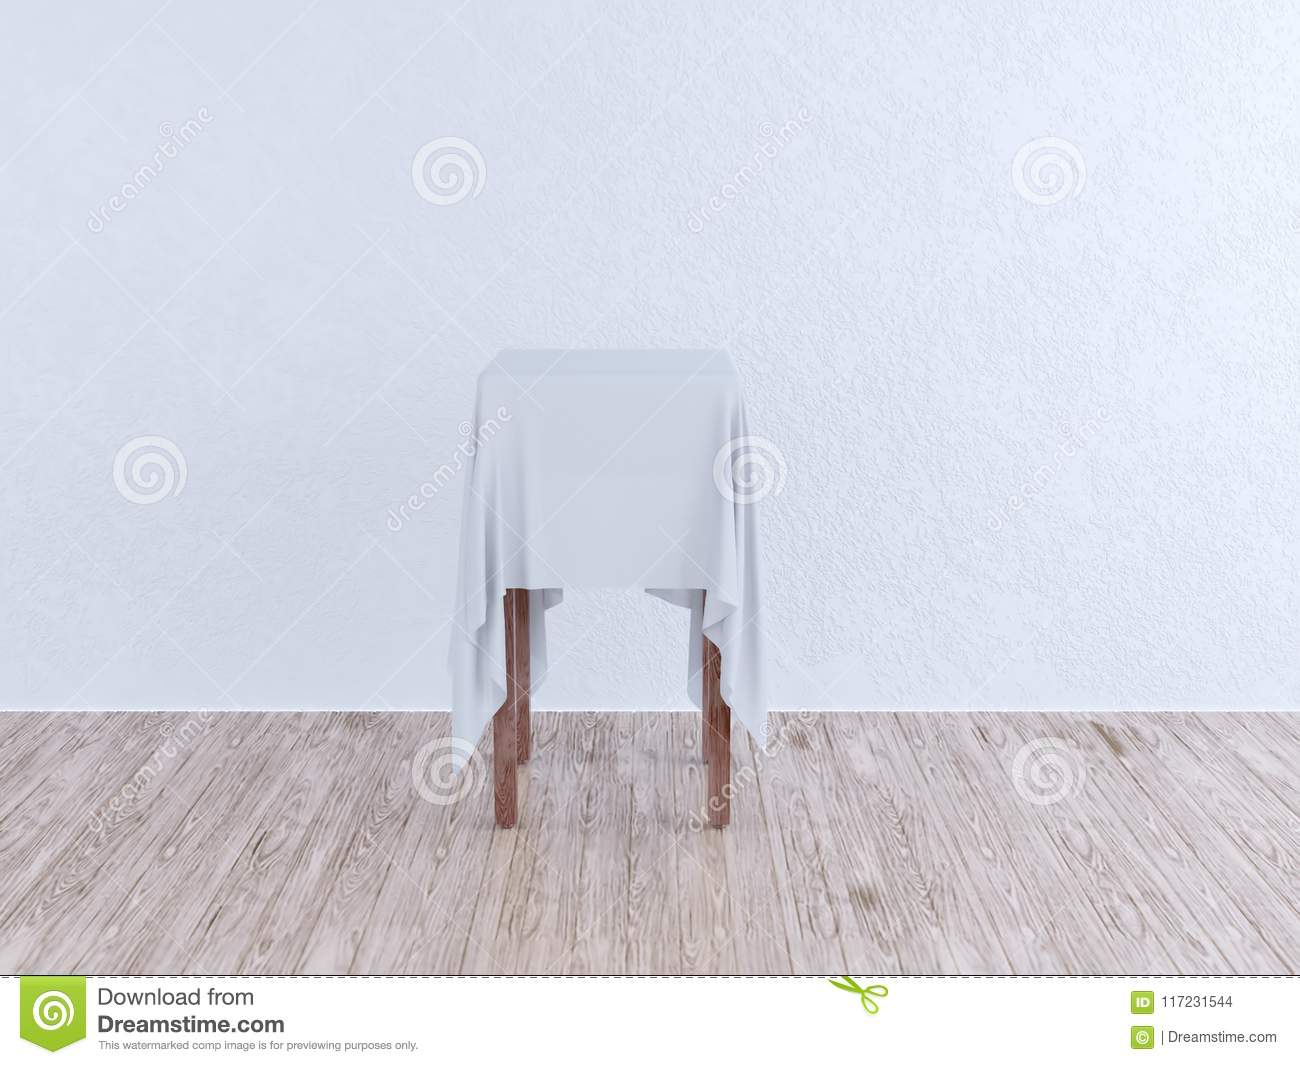 Corner Exhibition Stands Day : Wooden floor and light background art concept for an exhibition